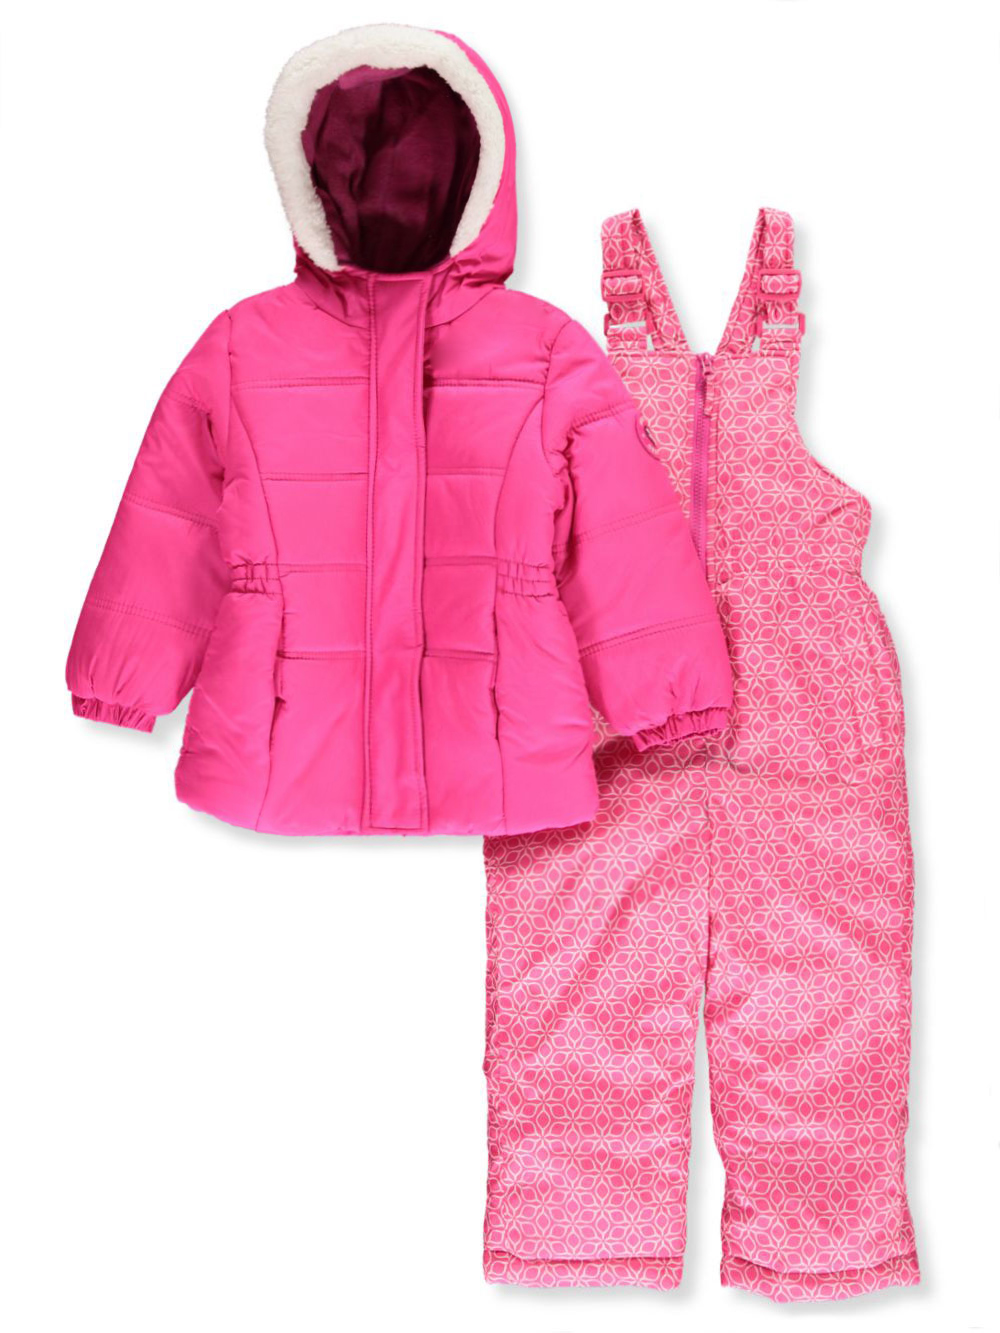 Girls Pink Snowsuits